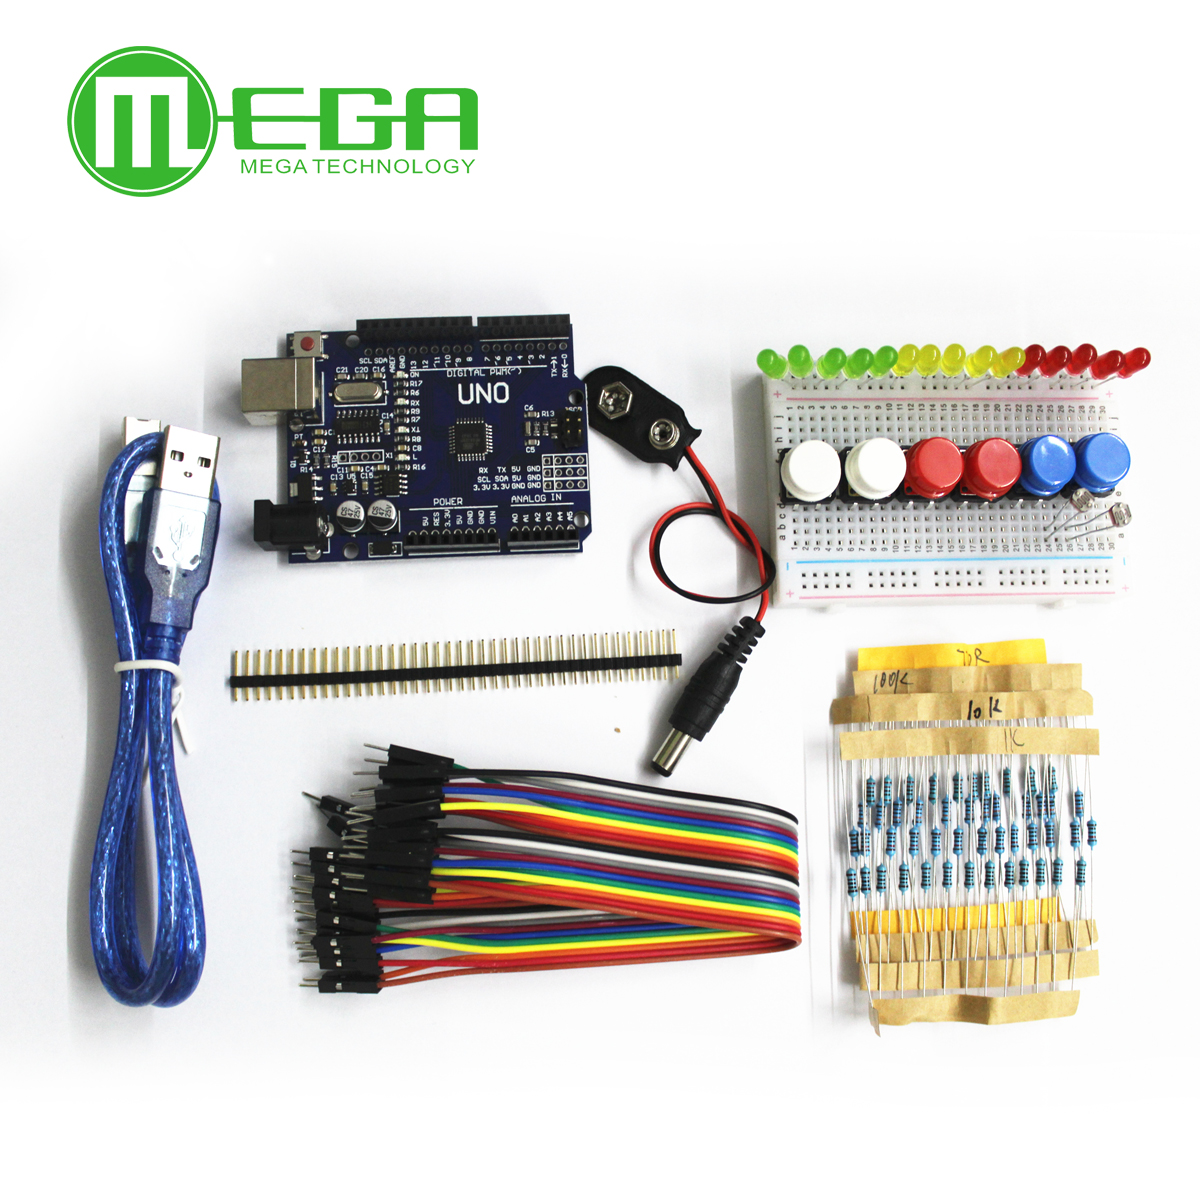 1set new Starter Kit UNO R3 mini Breadboard LED jumper wire button for Arduino compatile